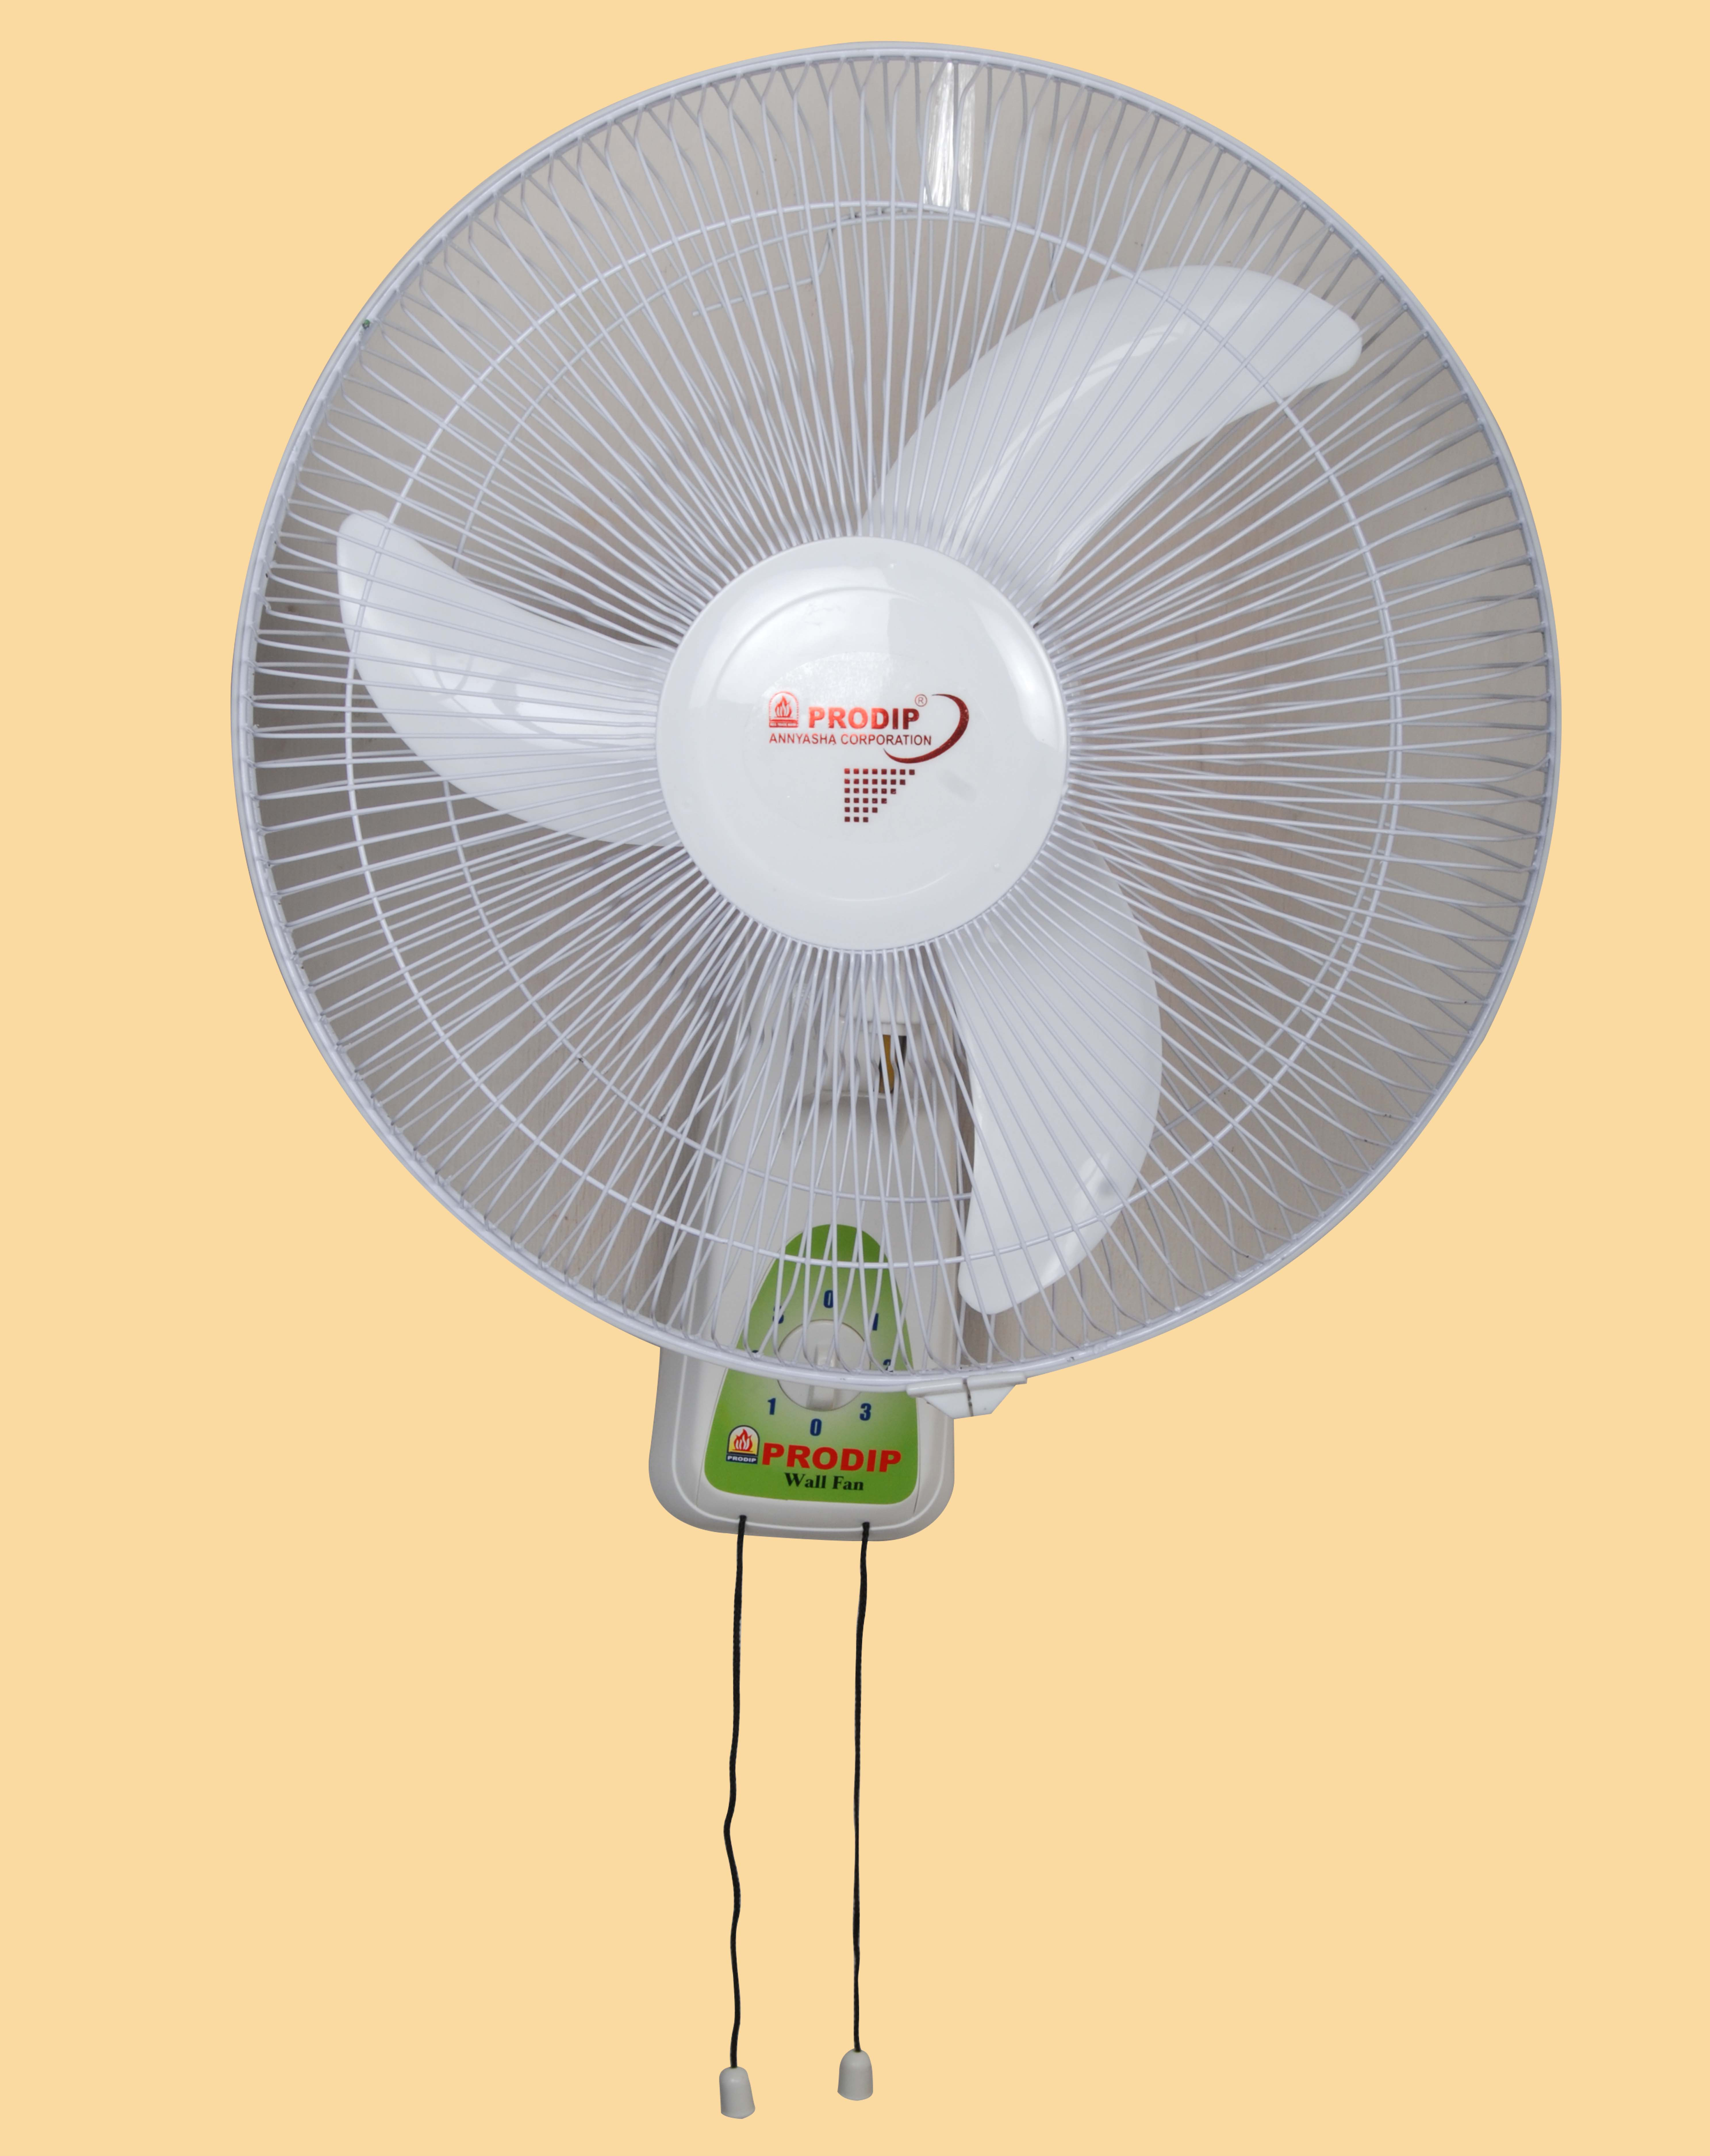 WALL FAN Image